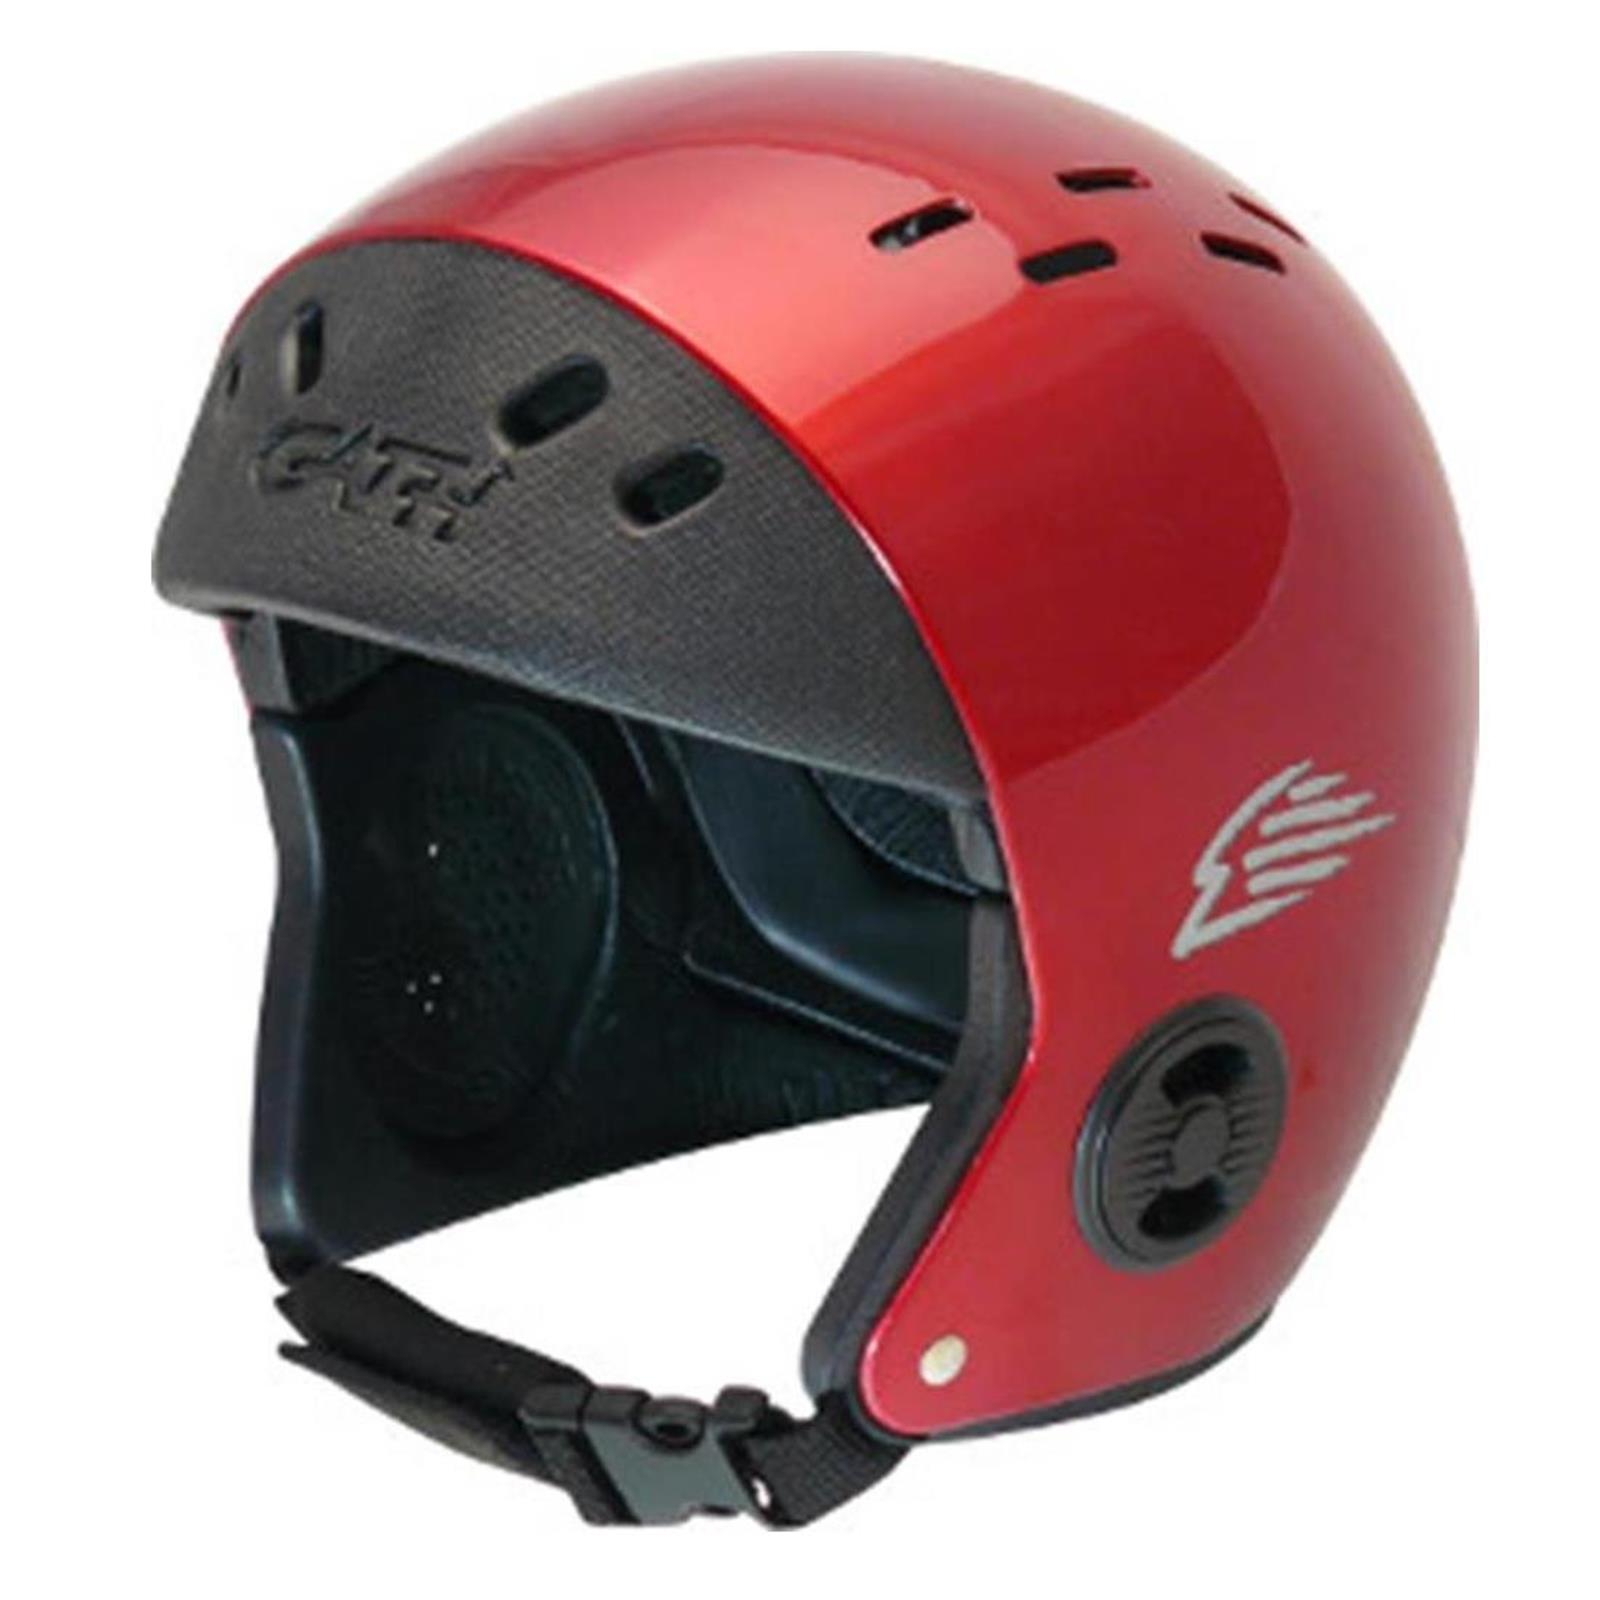 GATH Helm Standard L Red gloss